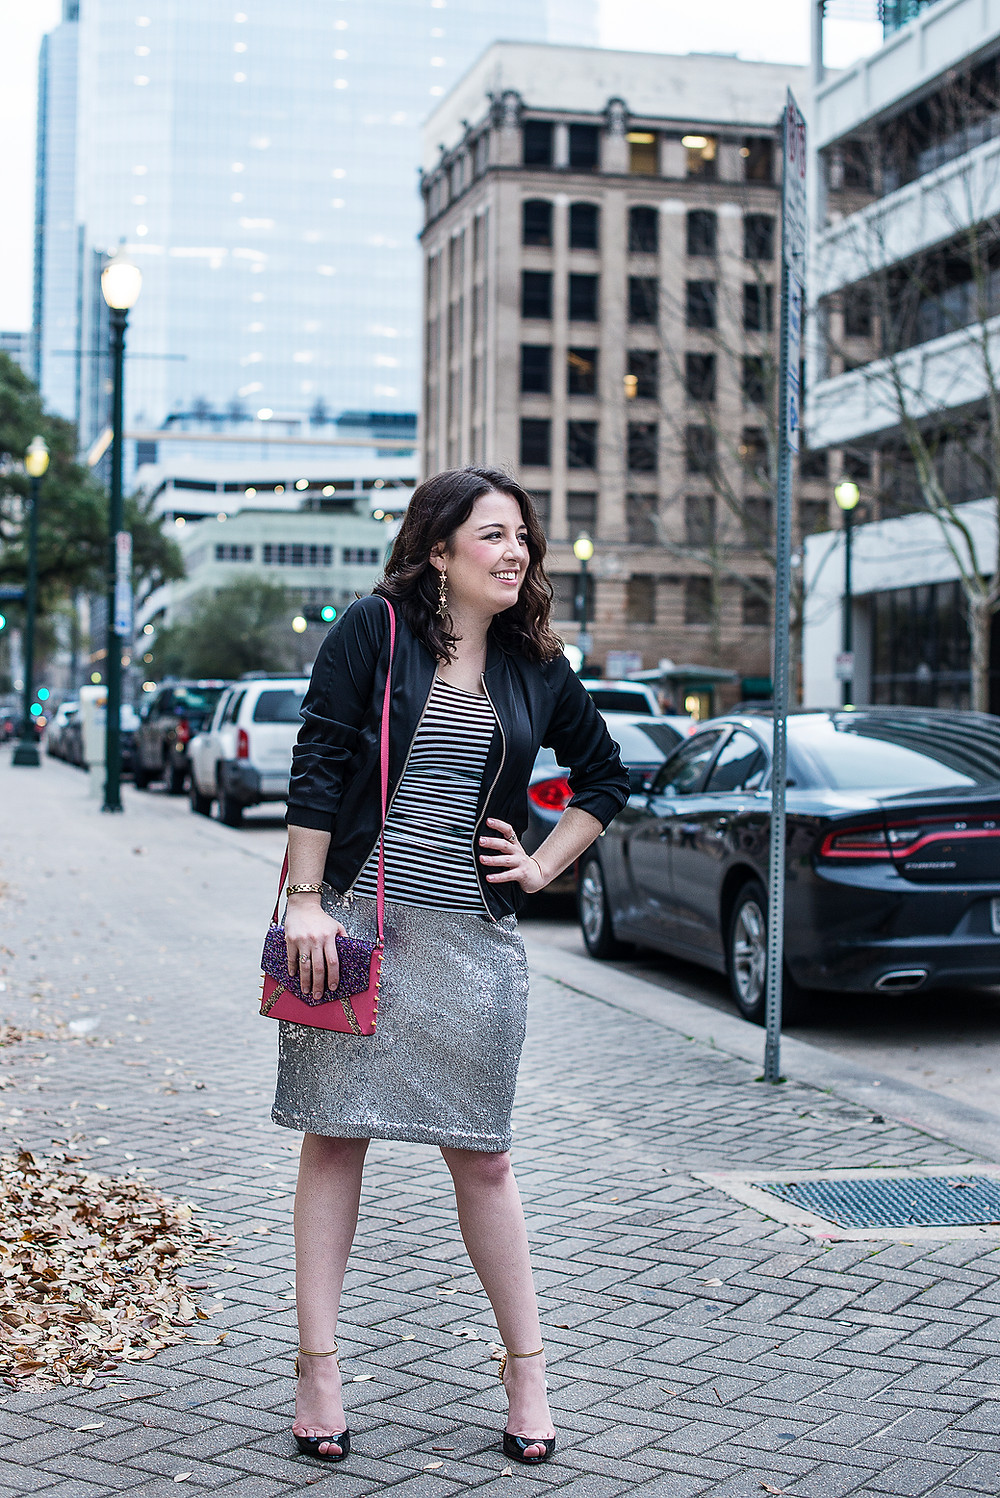 Wardrobe Stylist in Houston pairs stripes and sequins